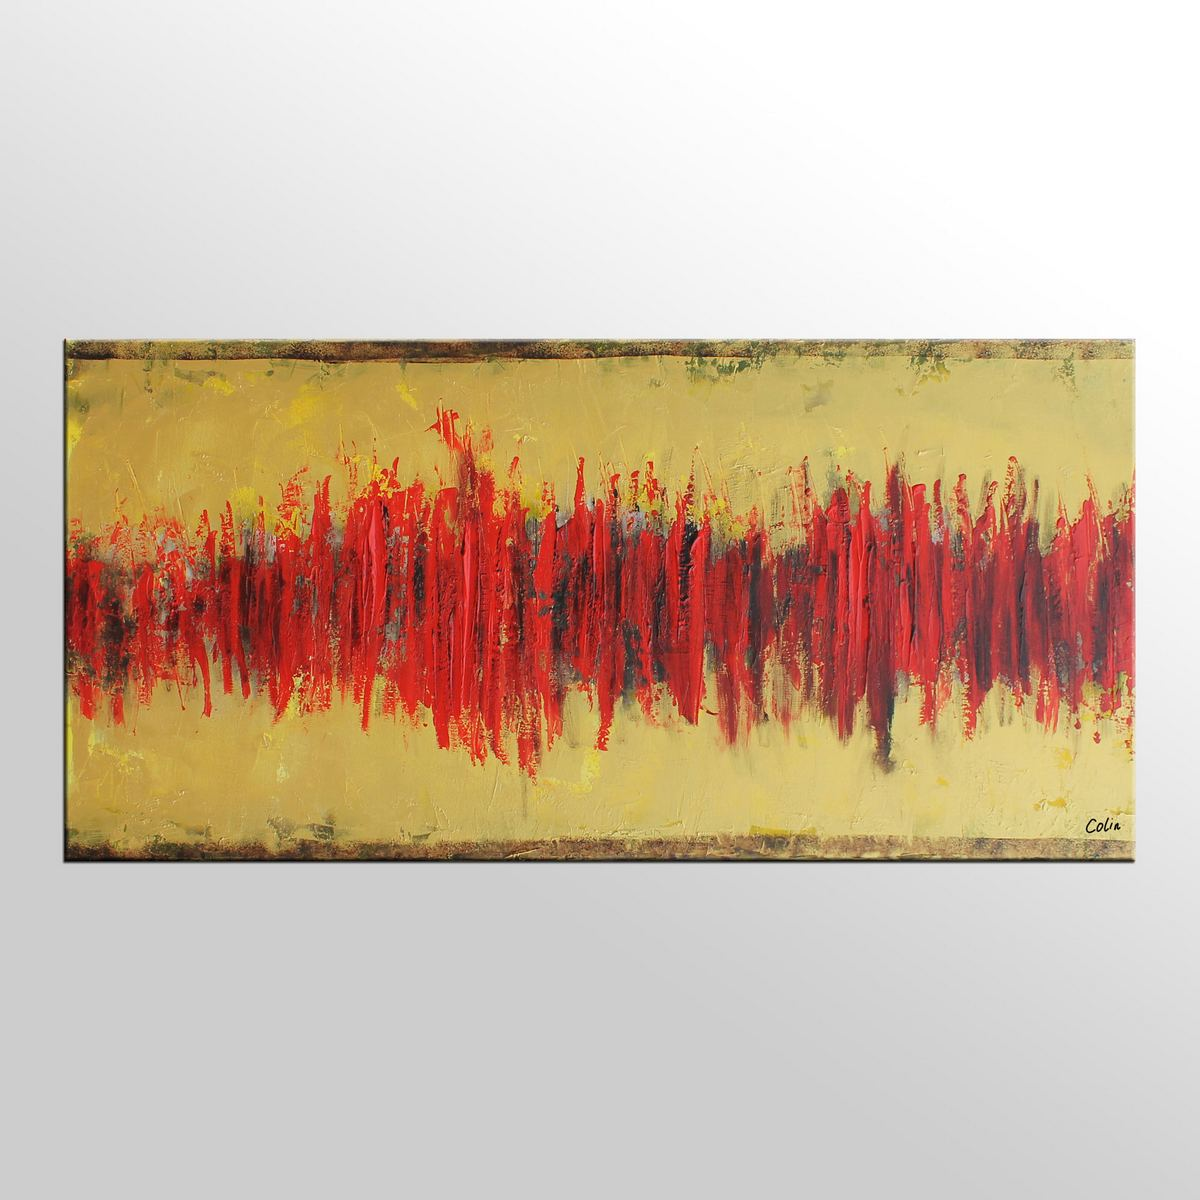 Living Room Wall Art, Abstract Painting, Original Painting, Abstract Art, Canvas Art, Wall Art, Modern Artwork, Canvas Painting, Contemporary Art, 552